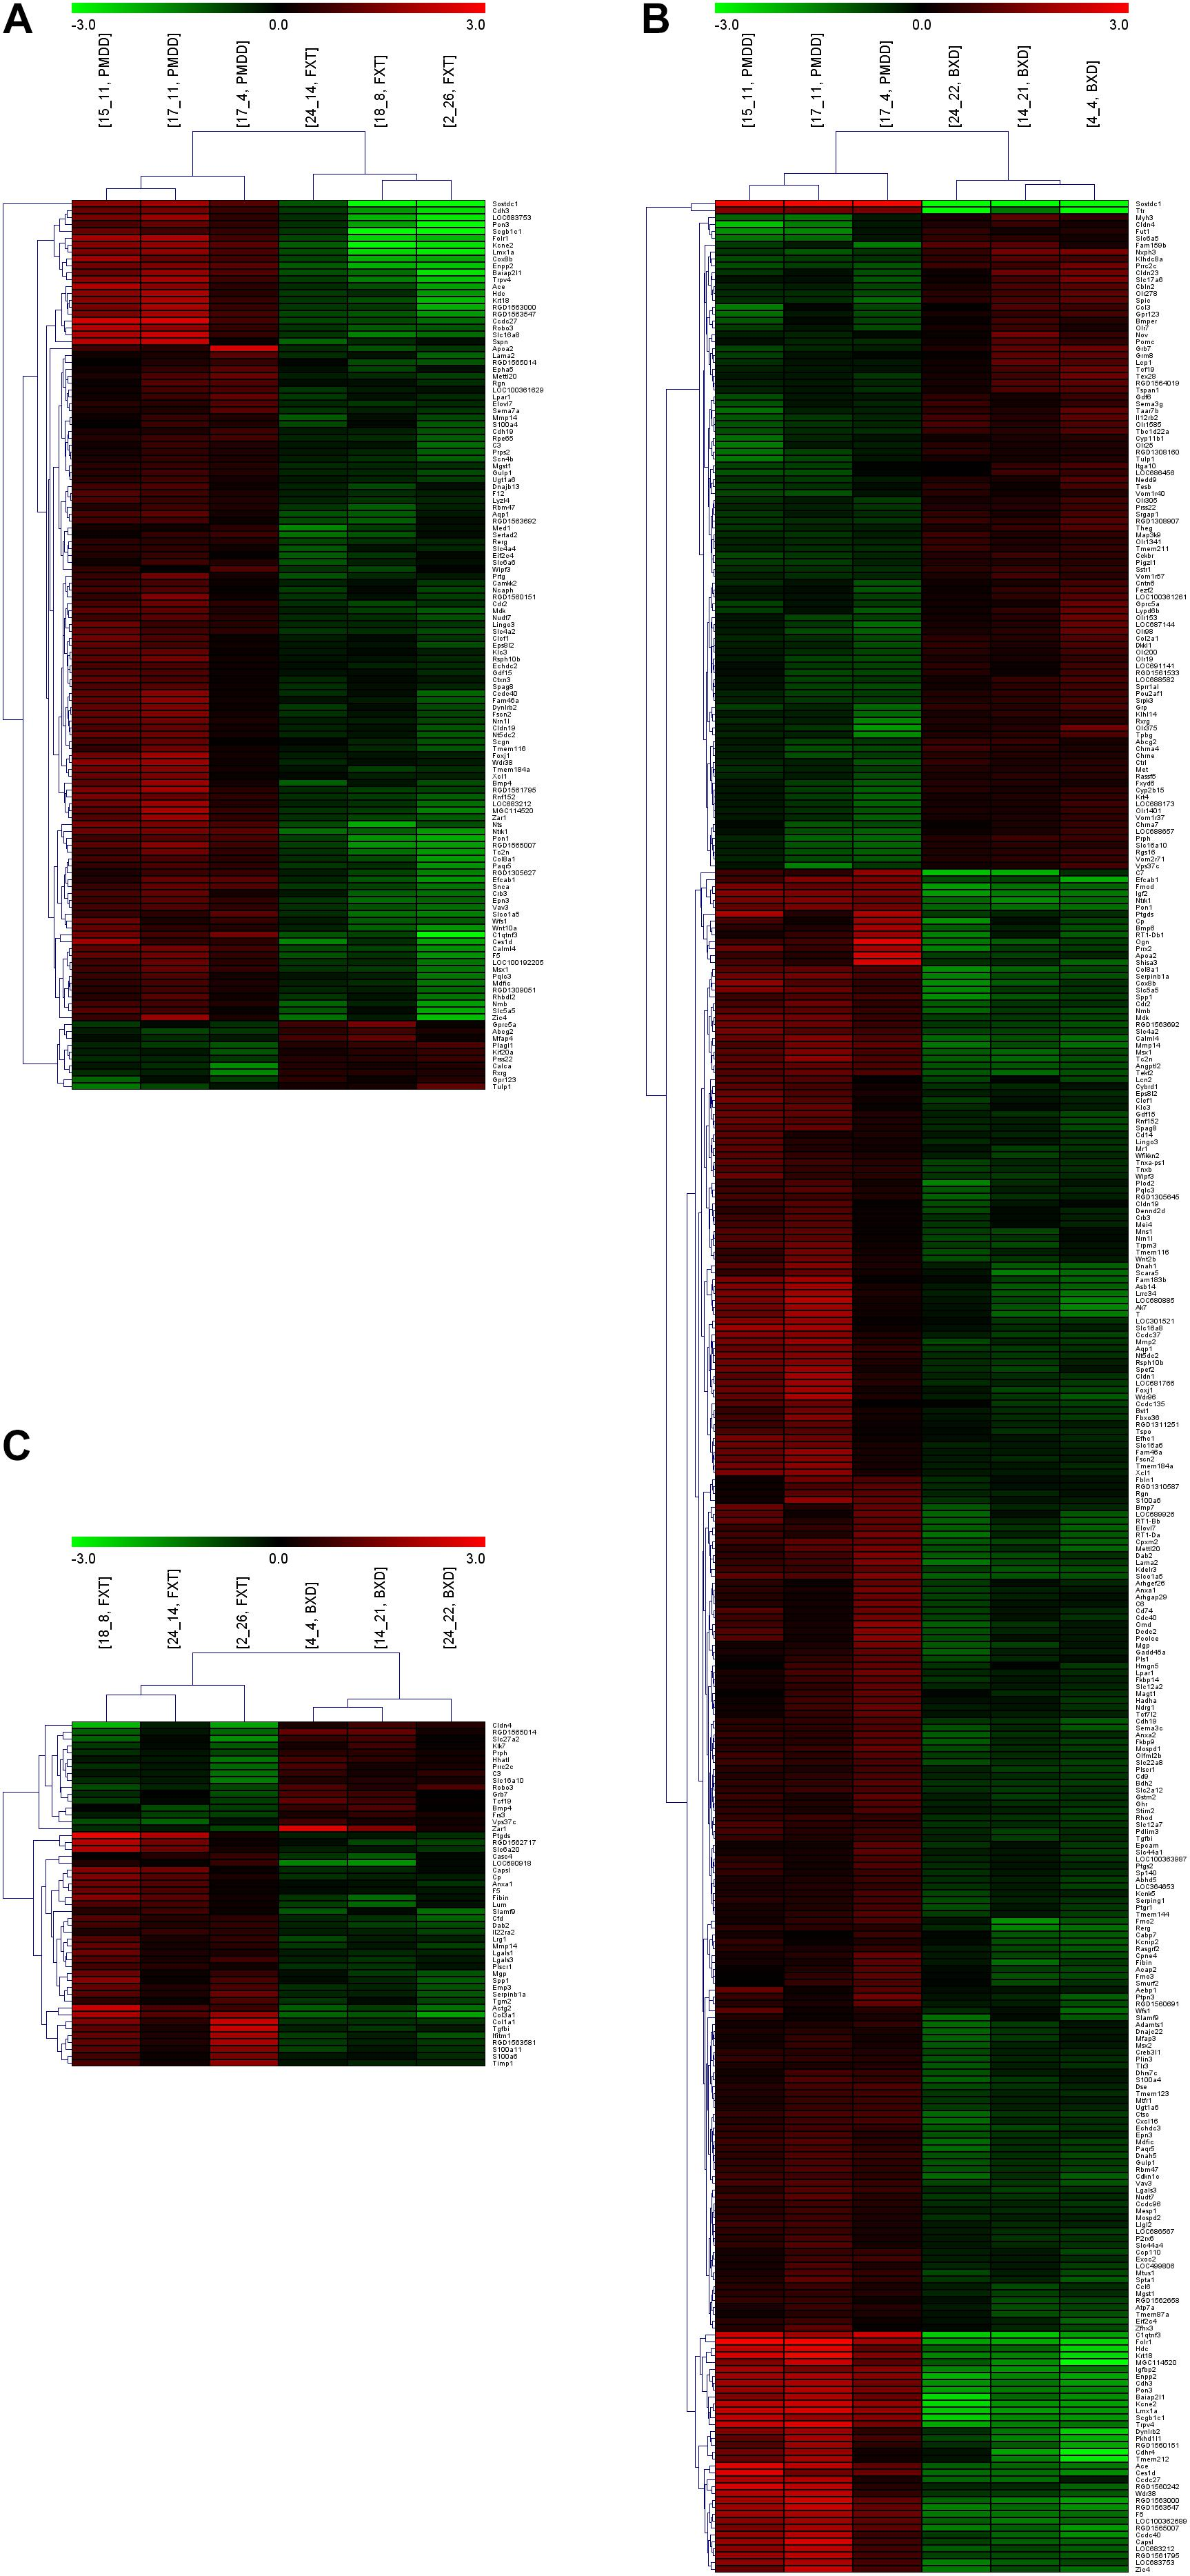 Frontiers | Gene Expression in the Hippocampus in a Rat